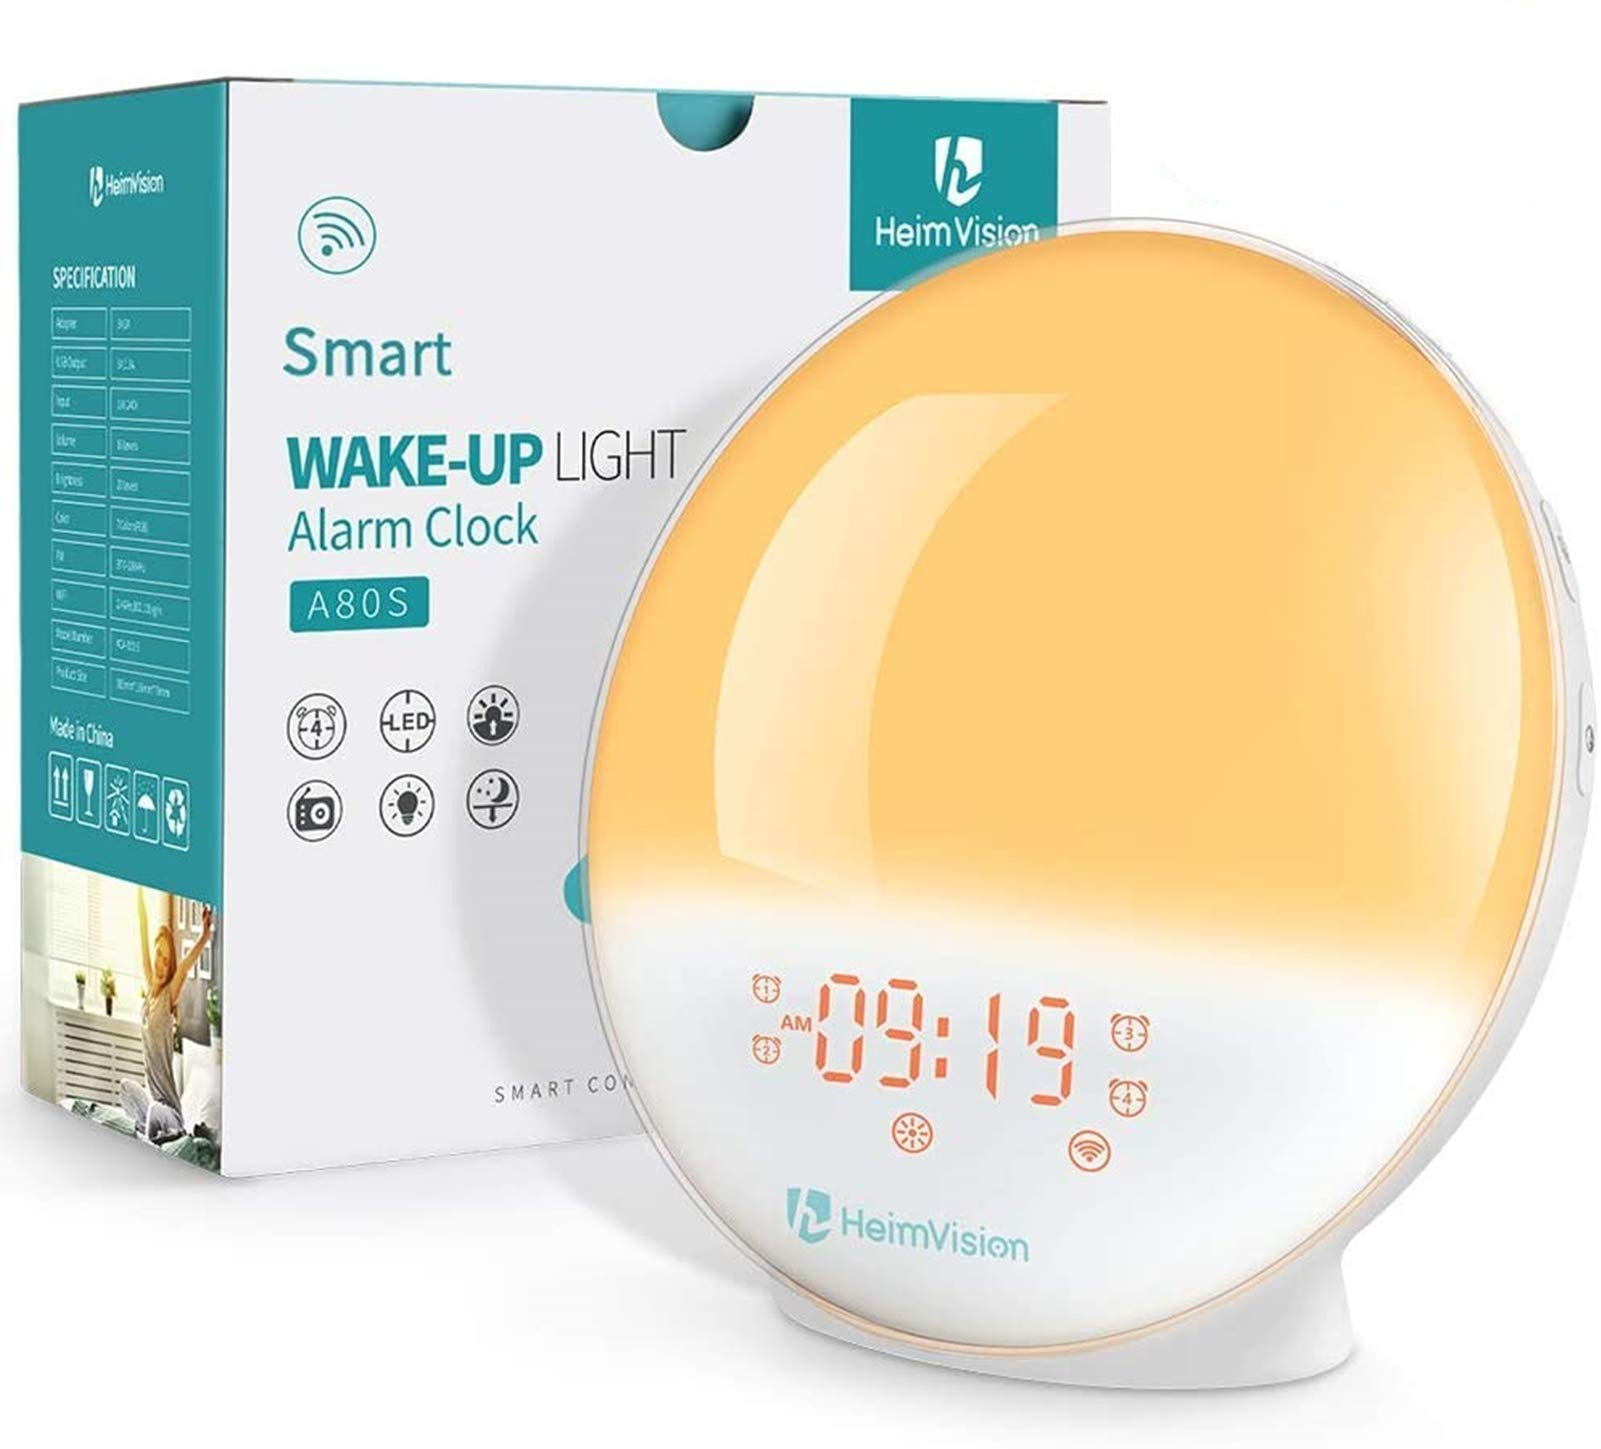 HeimVision Sunrise Alarm Clock, A80S Smart Wake up Light Work with Alexa, Sleep Aid Digital Alarm Clock with Sunset Simulation, Snooze/FM Radio /7 Natural Sounds and 4 Alarms for Adults & Kids